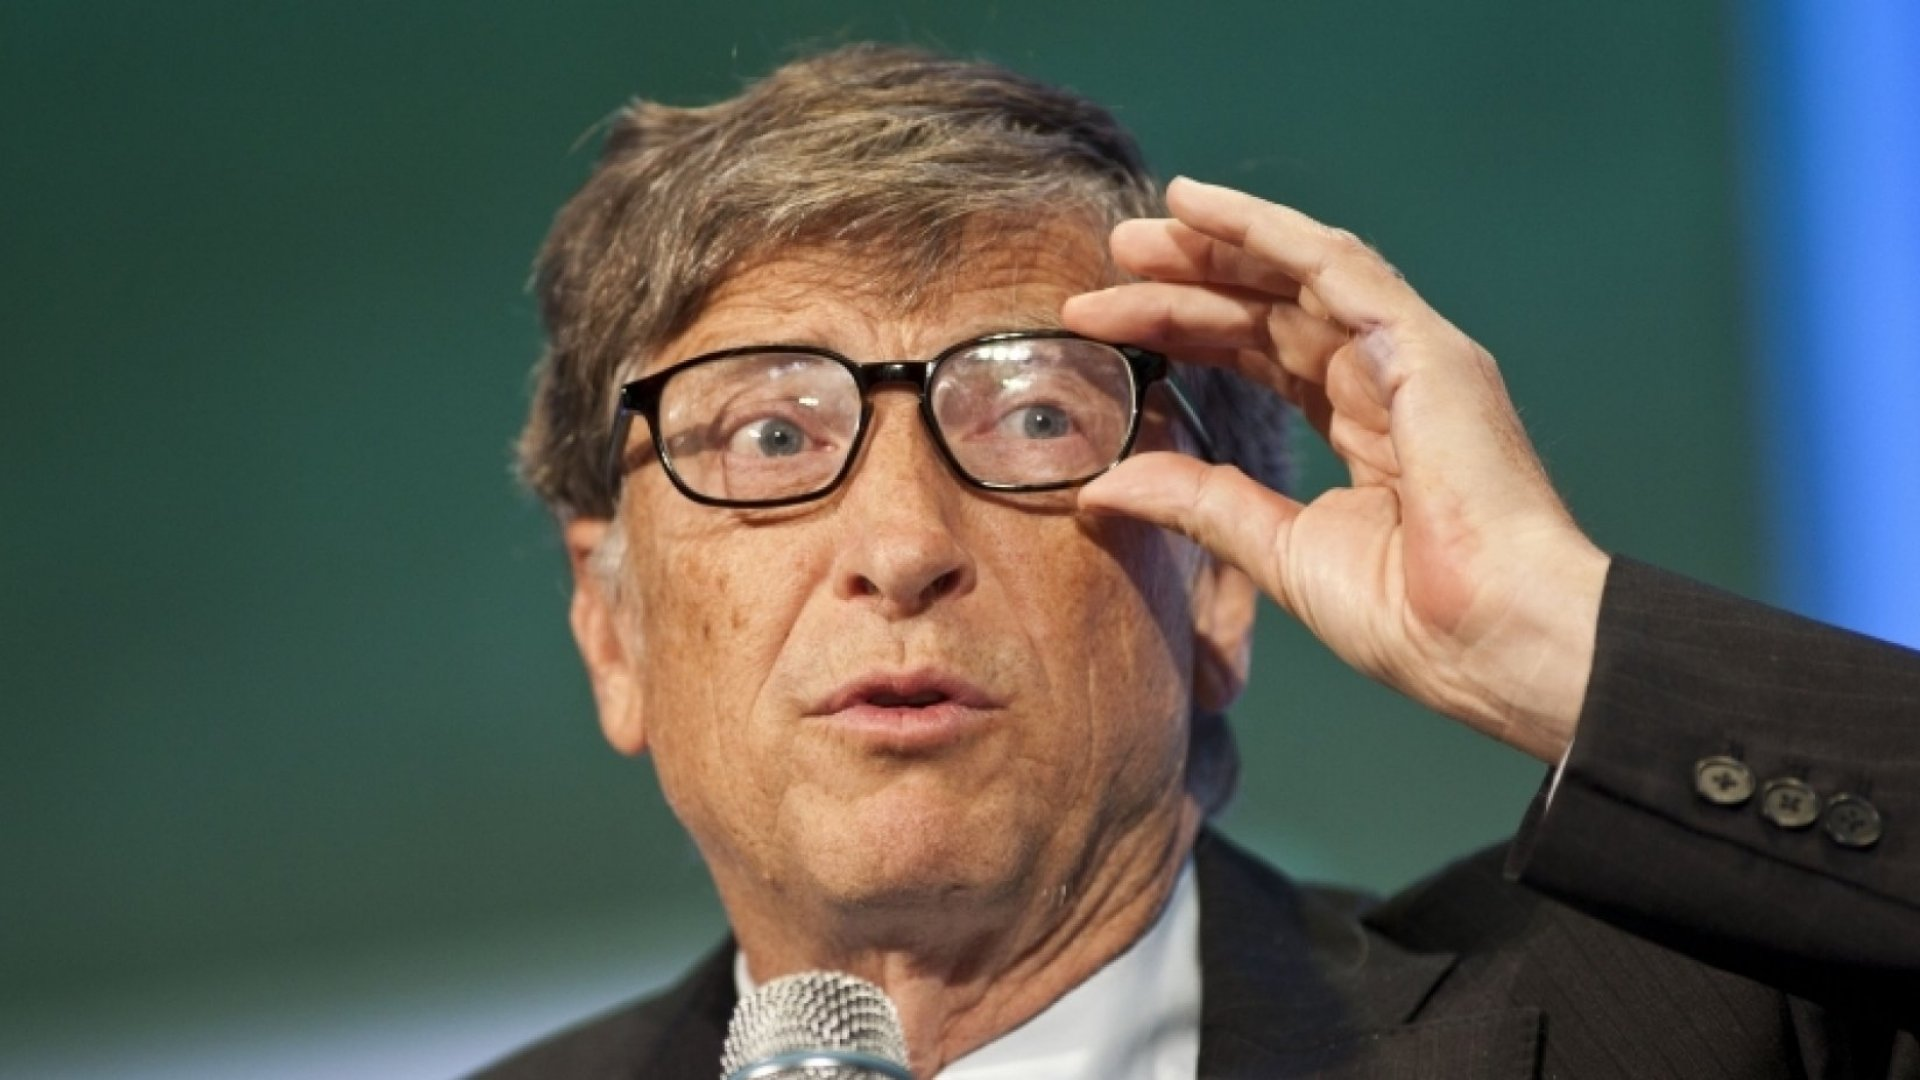 Here's What We All Can Learn From The Bill Gates Article That's Going Viral